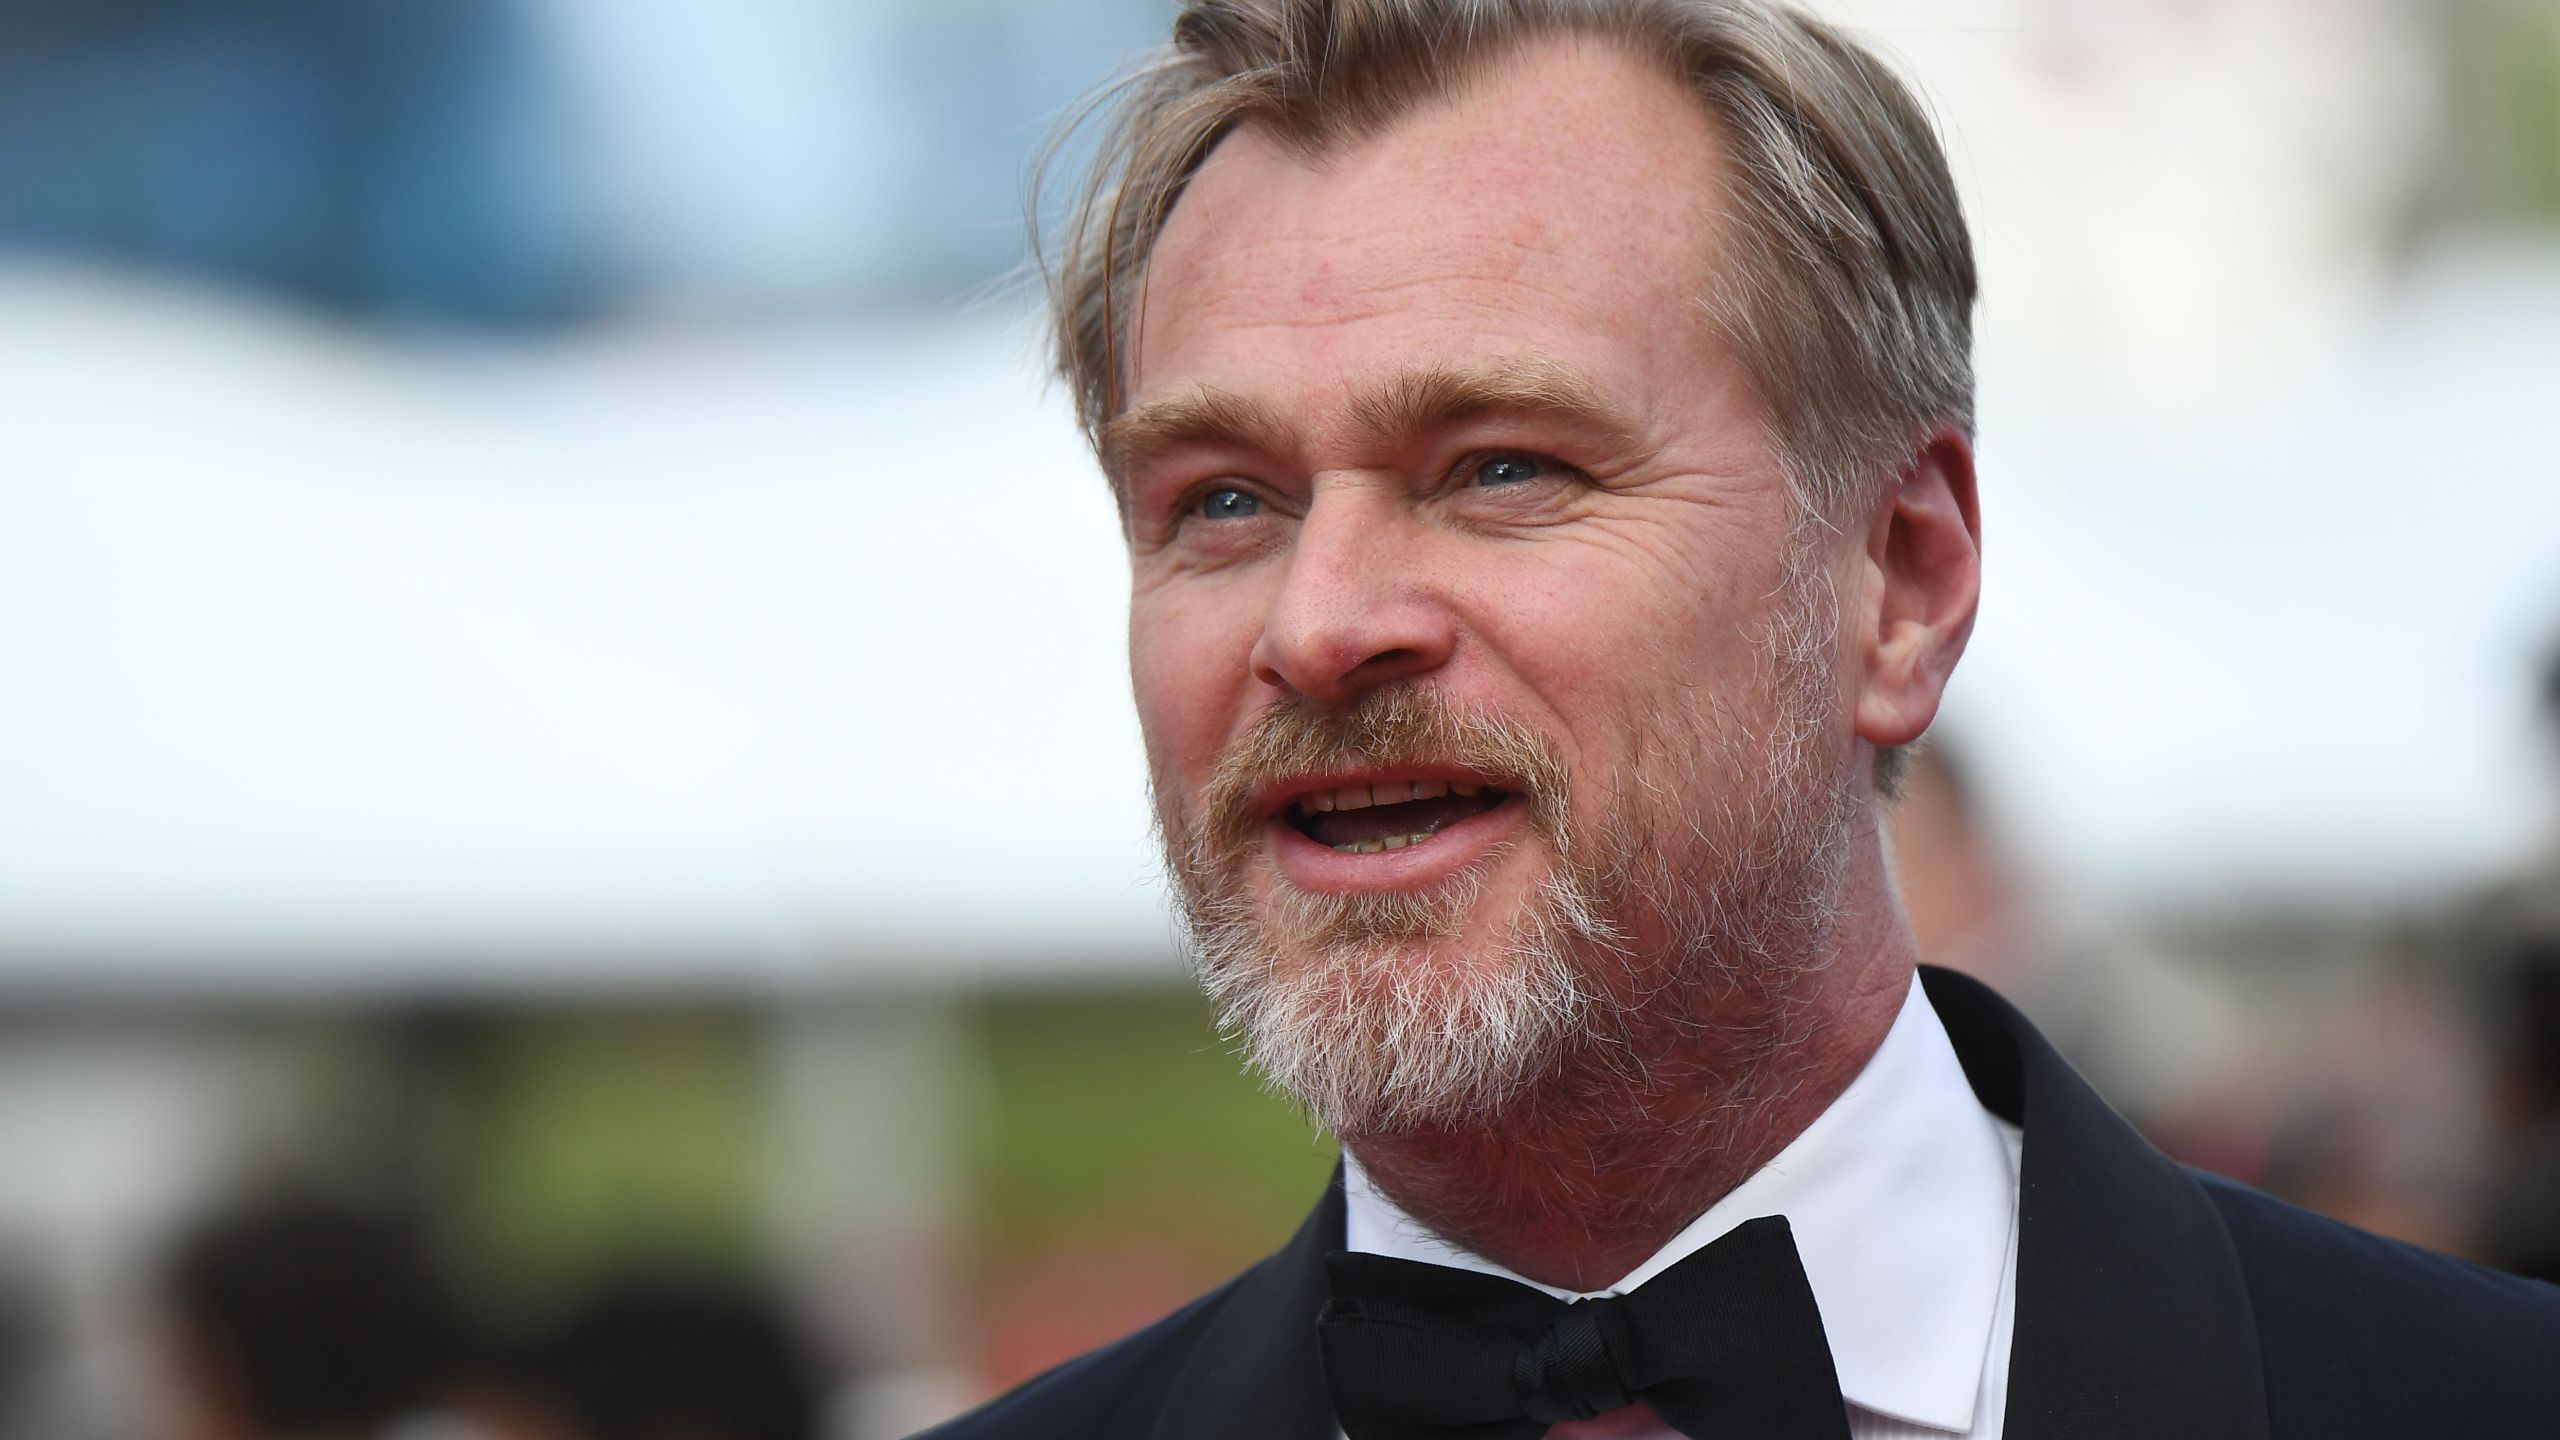 """British director Christopher Nolan poses as he arrives on May 13, 2018, for the screening of a remastered version of the film """"2001: A Space Odyssey"""" at the 71st edition of the Cannes Film Festival in southern France. (ANNE-CHRISTINE POUJOULAT/AFP via Getty Images)"""